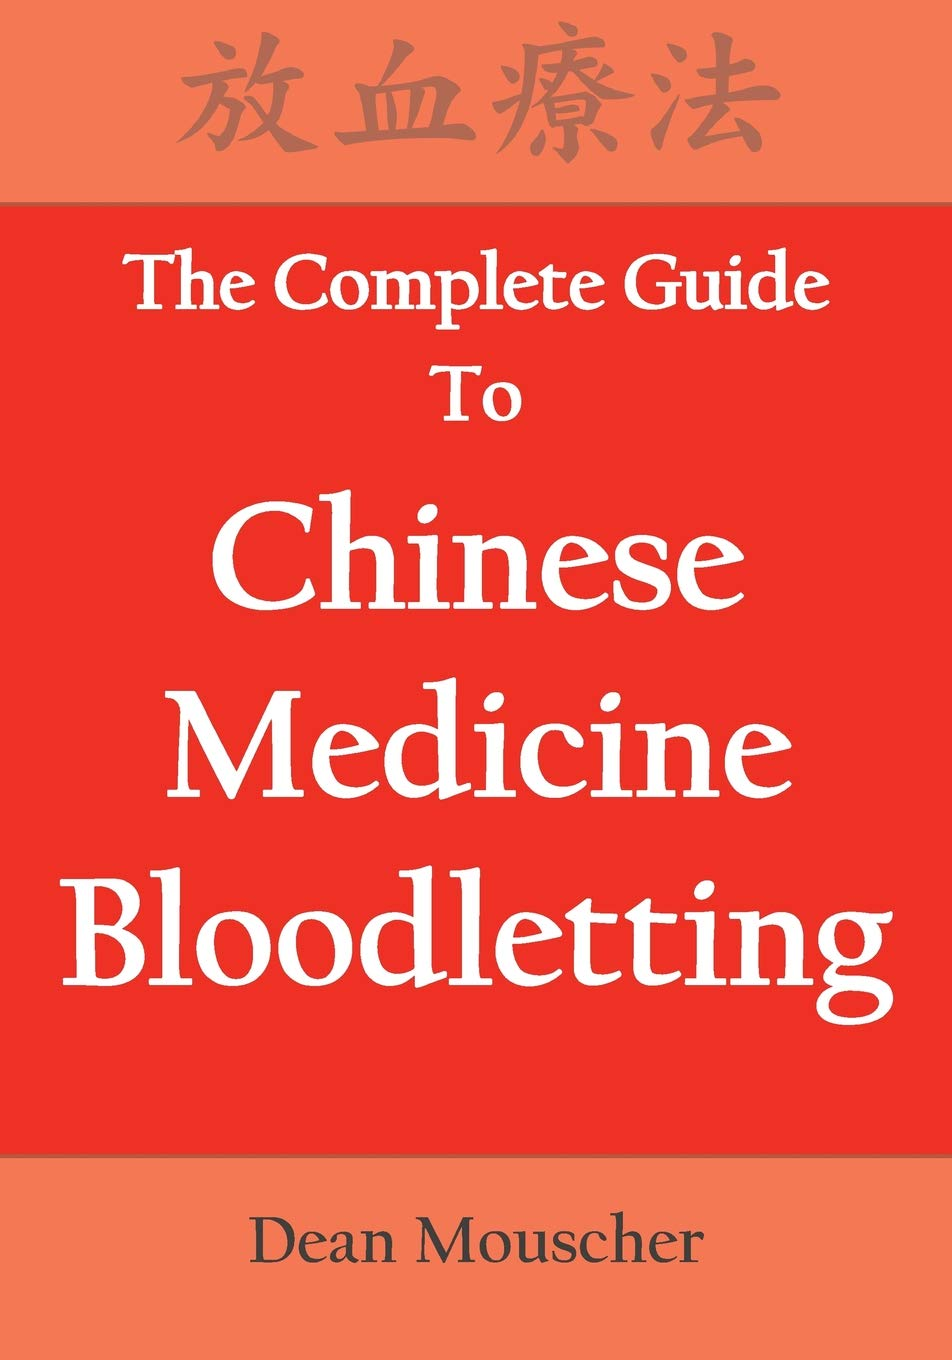 The Complete Guide to Chinese Medicine Blood Letting